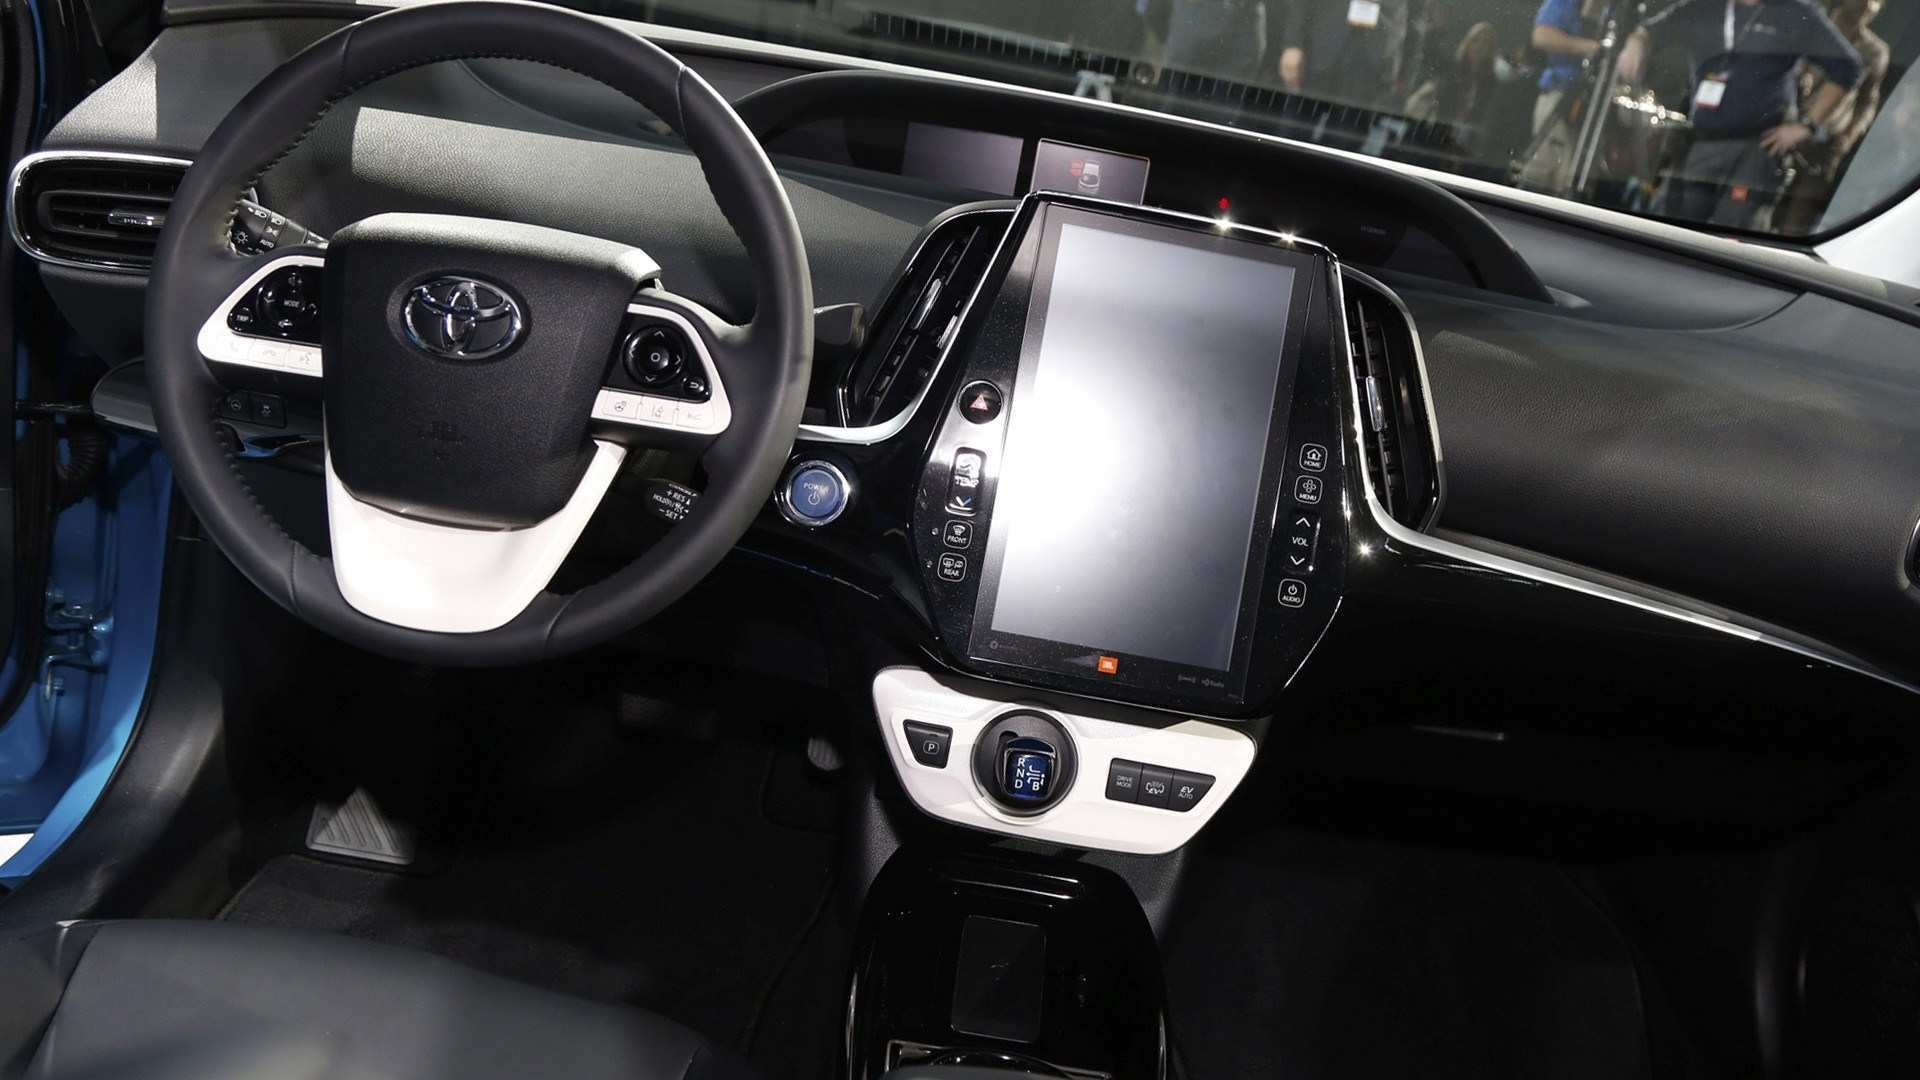 45 All New 2019 Toyota Mark X Model with 2019 Toyota Mark X